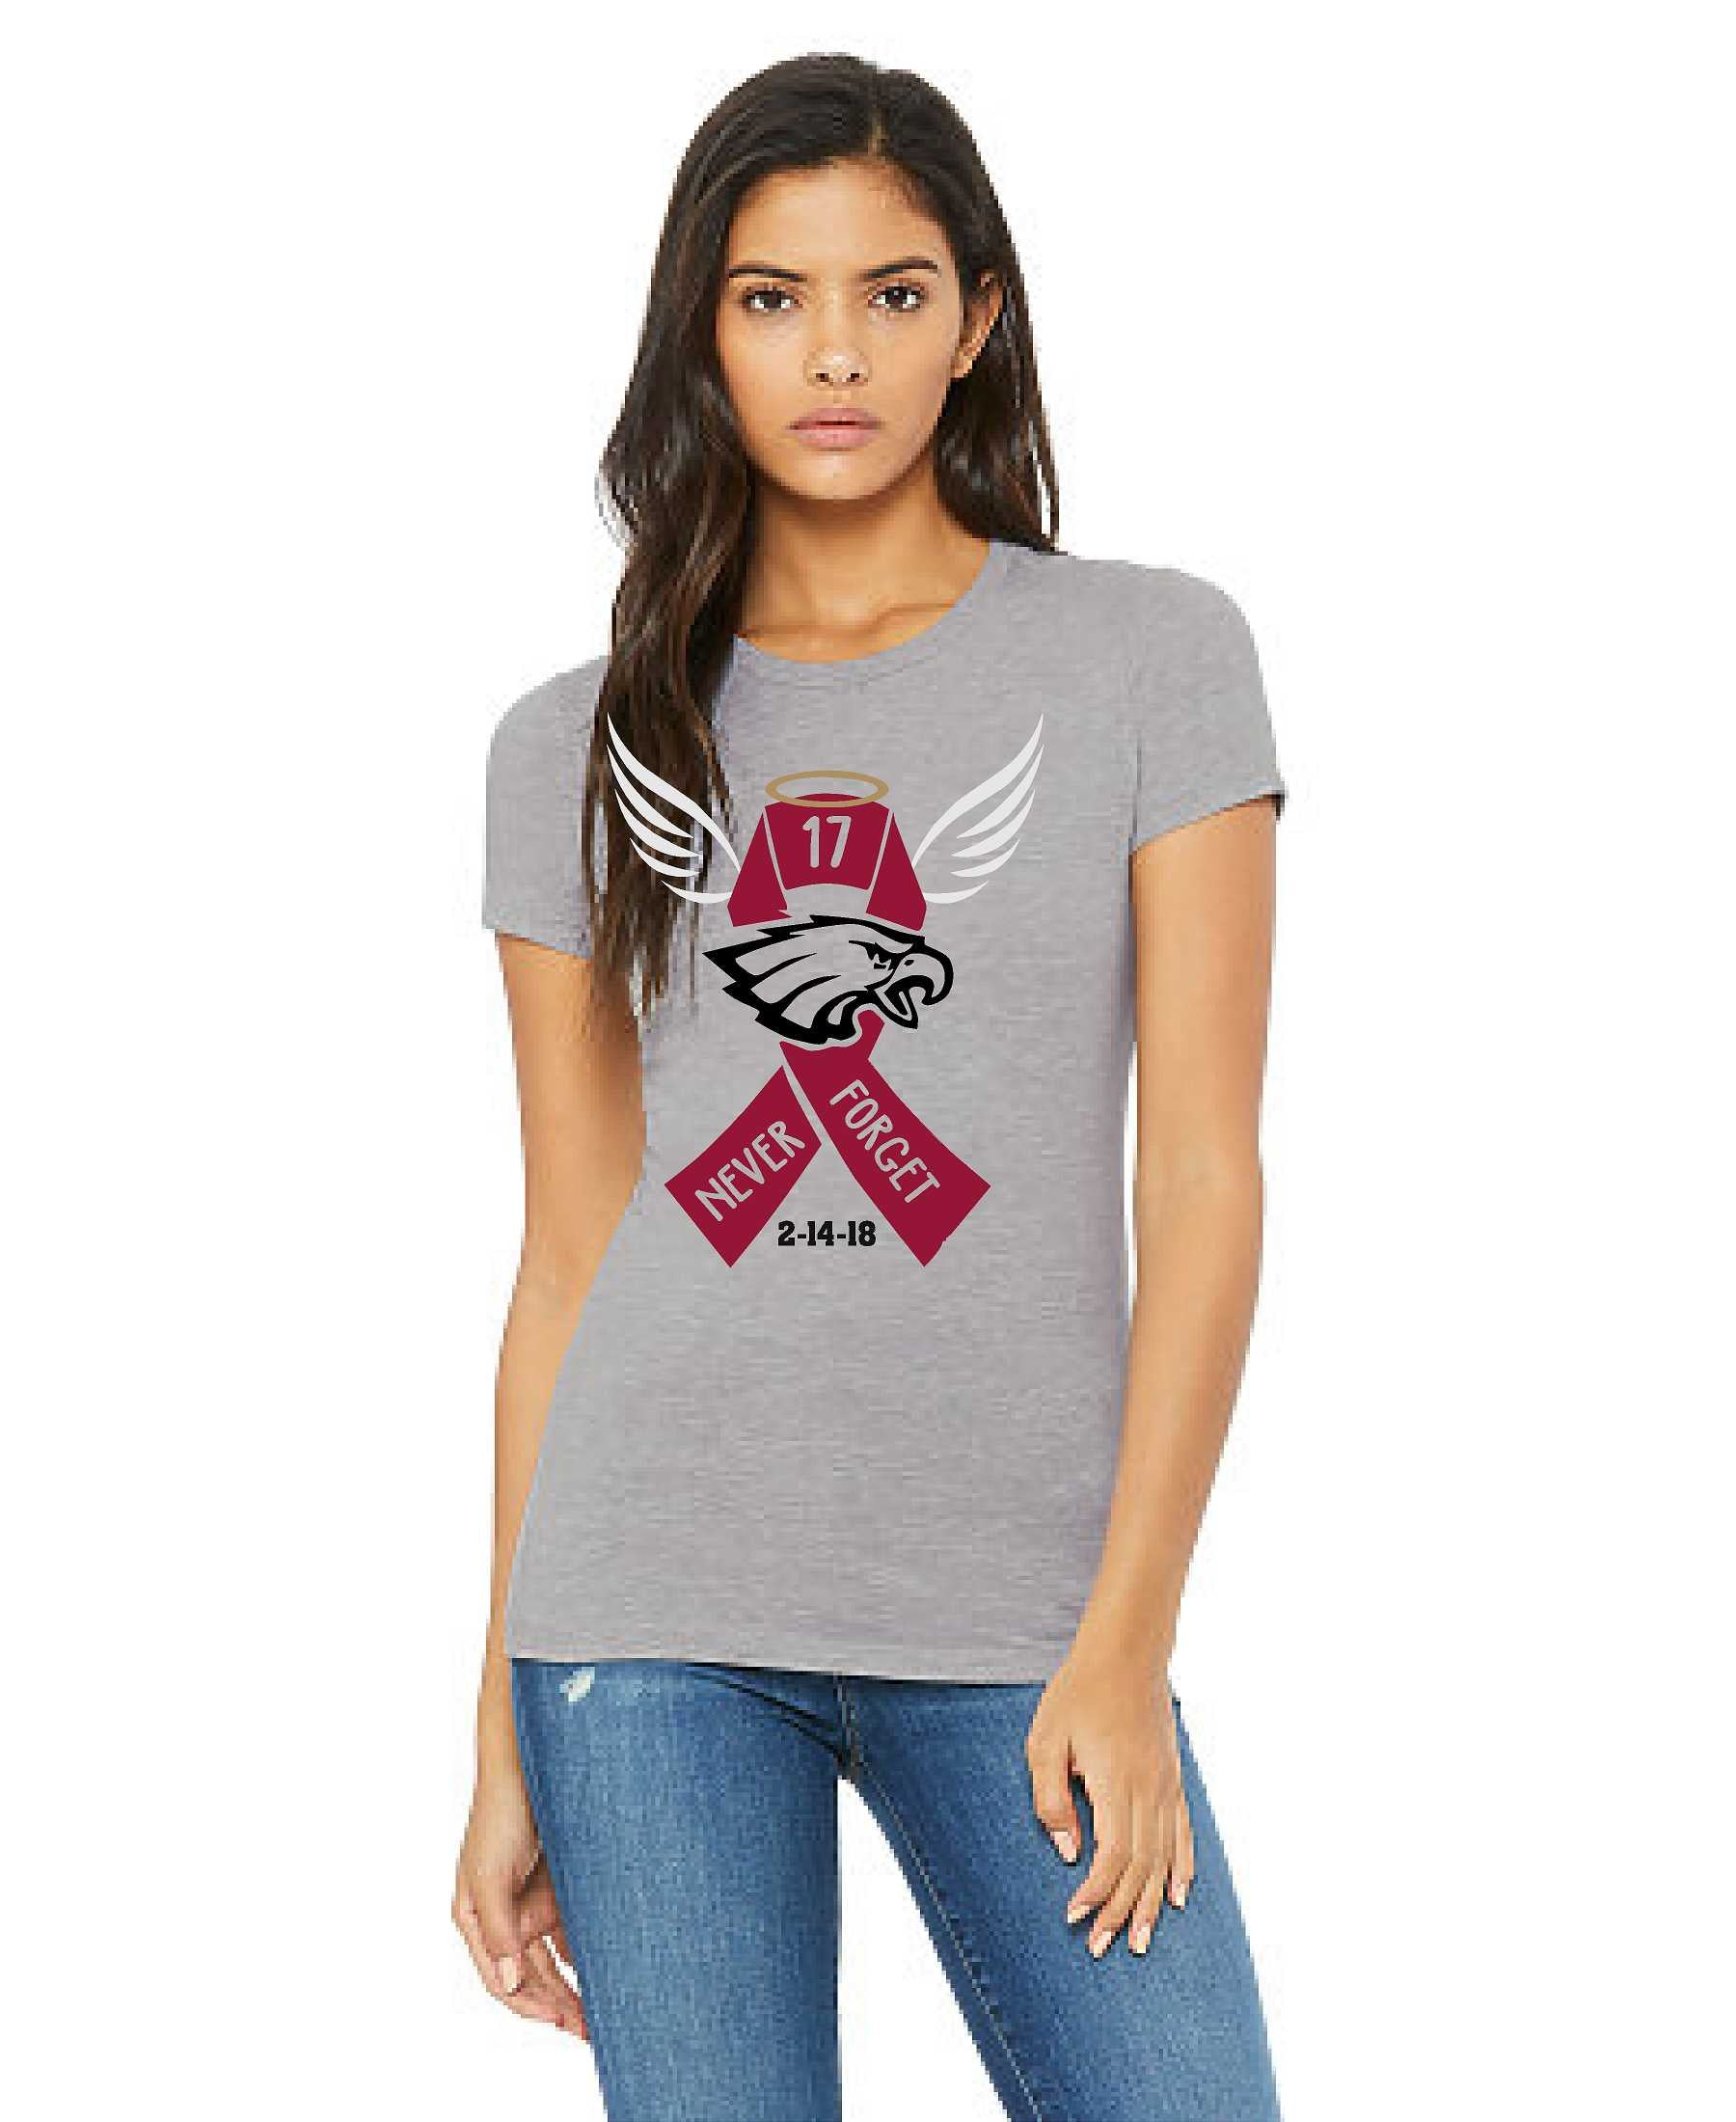 Stoneman Douglas 2nd Anniversary Tee - Athletic Heather Women's - TeesForHumanity